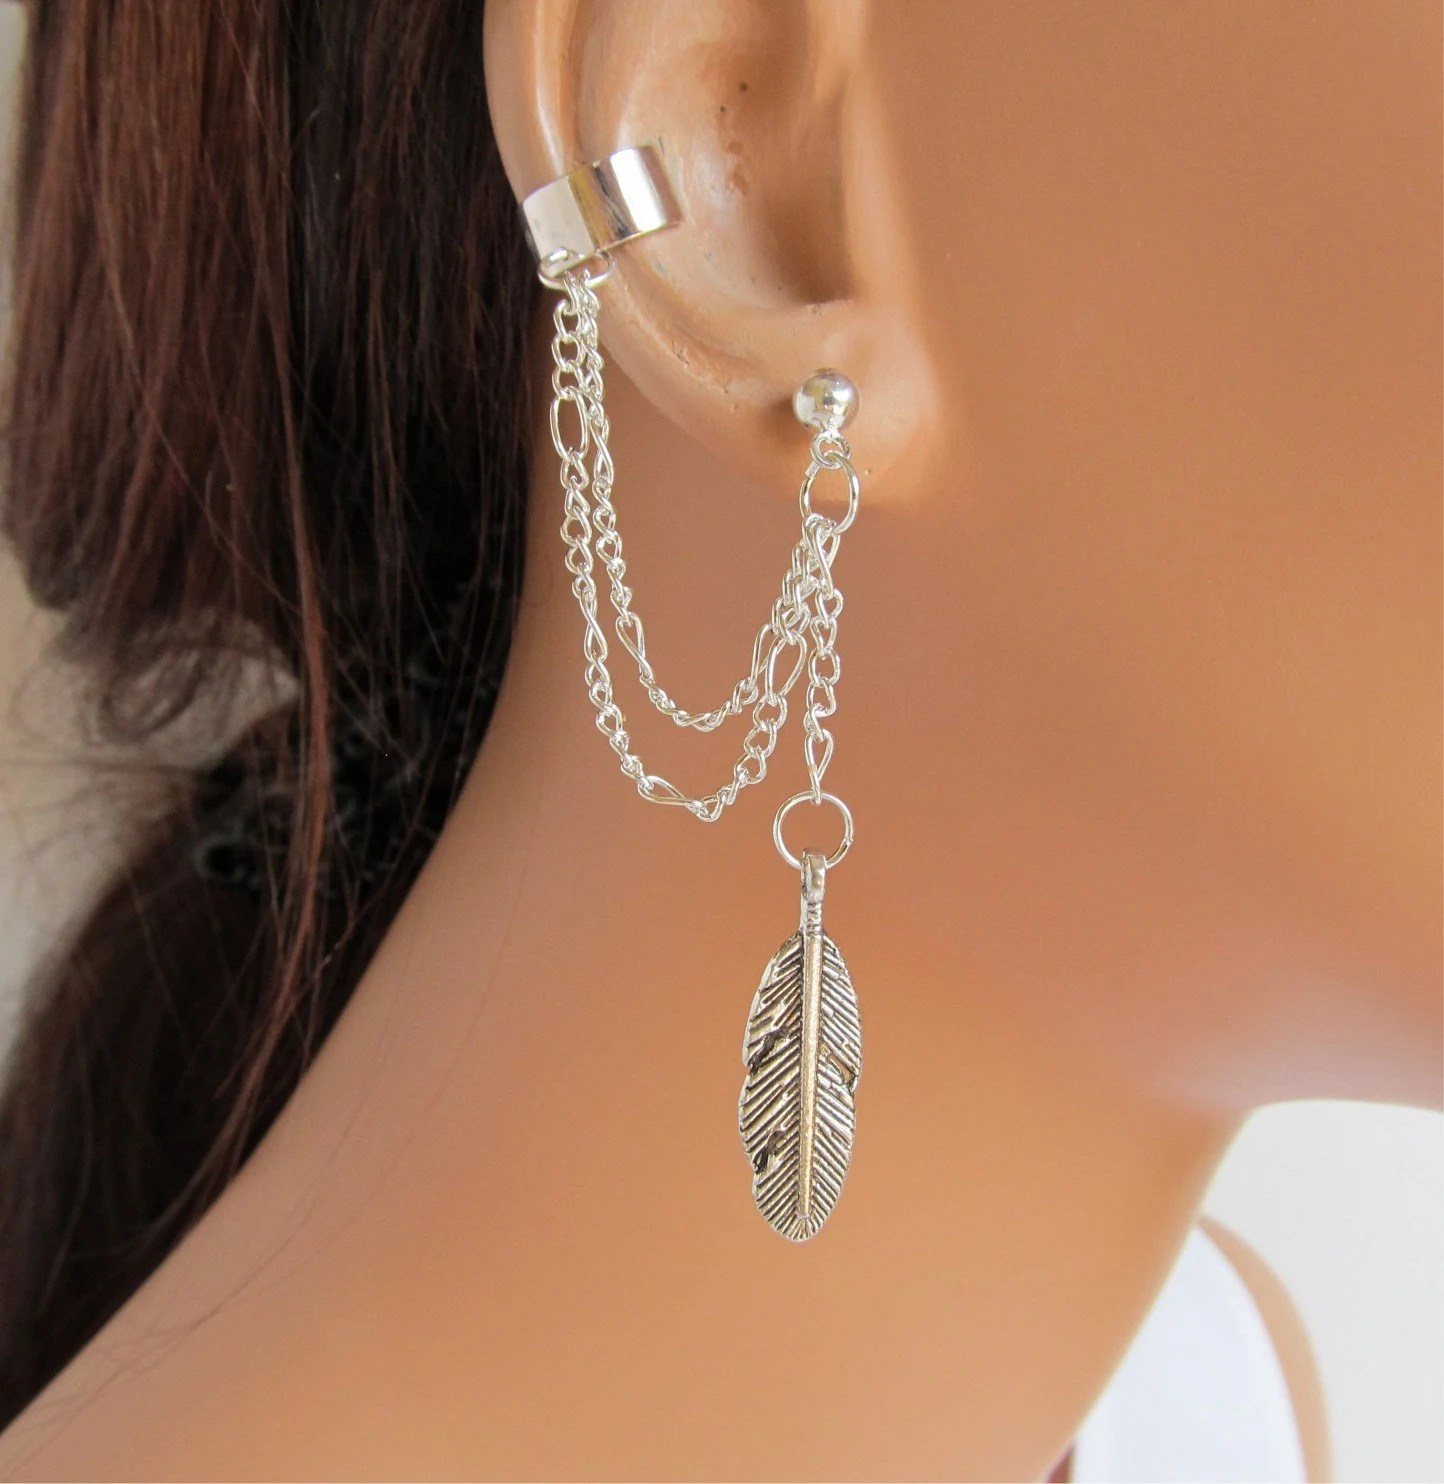 Ear Cuff Earrings Silver Double Chain Large Feather Gift Under